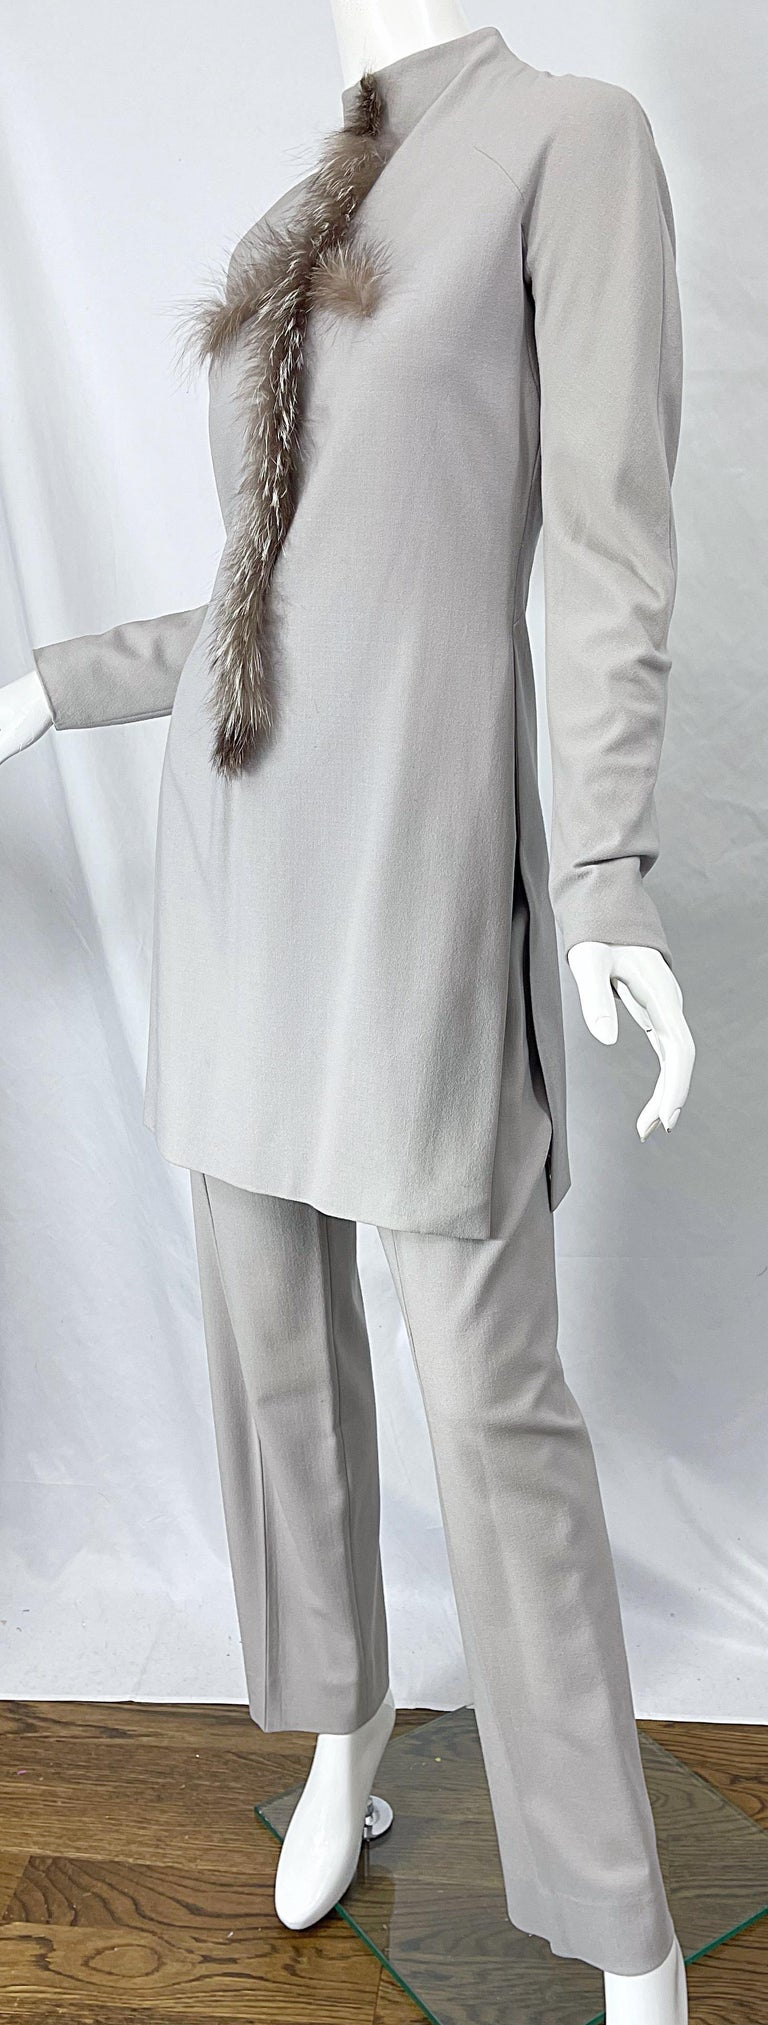 Givenchy Couture Alexander McQueen F/W 2003 Grey Runway Tunic + Slim Pants For Sale 4